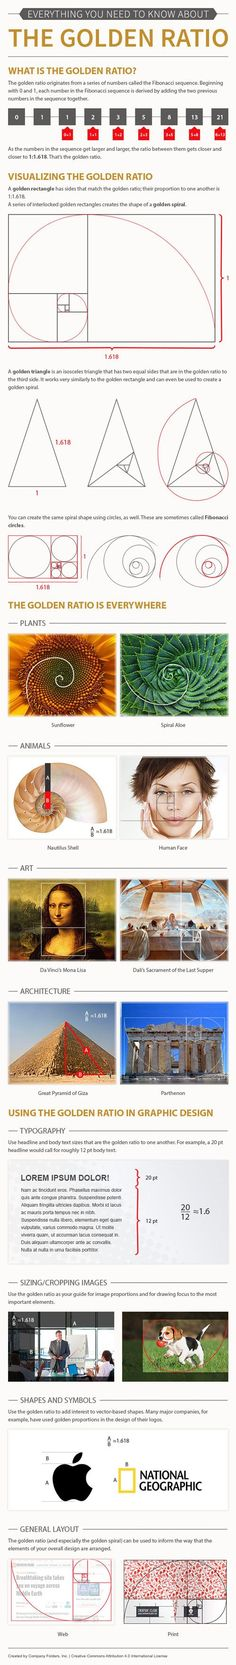 The golden ratio sho